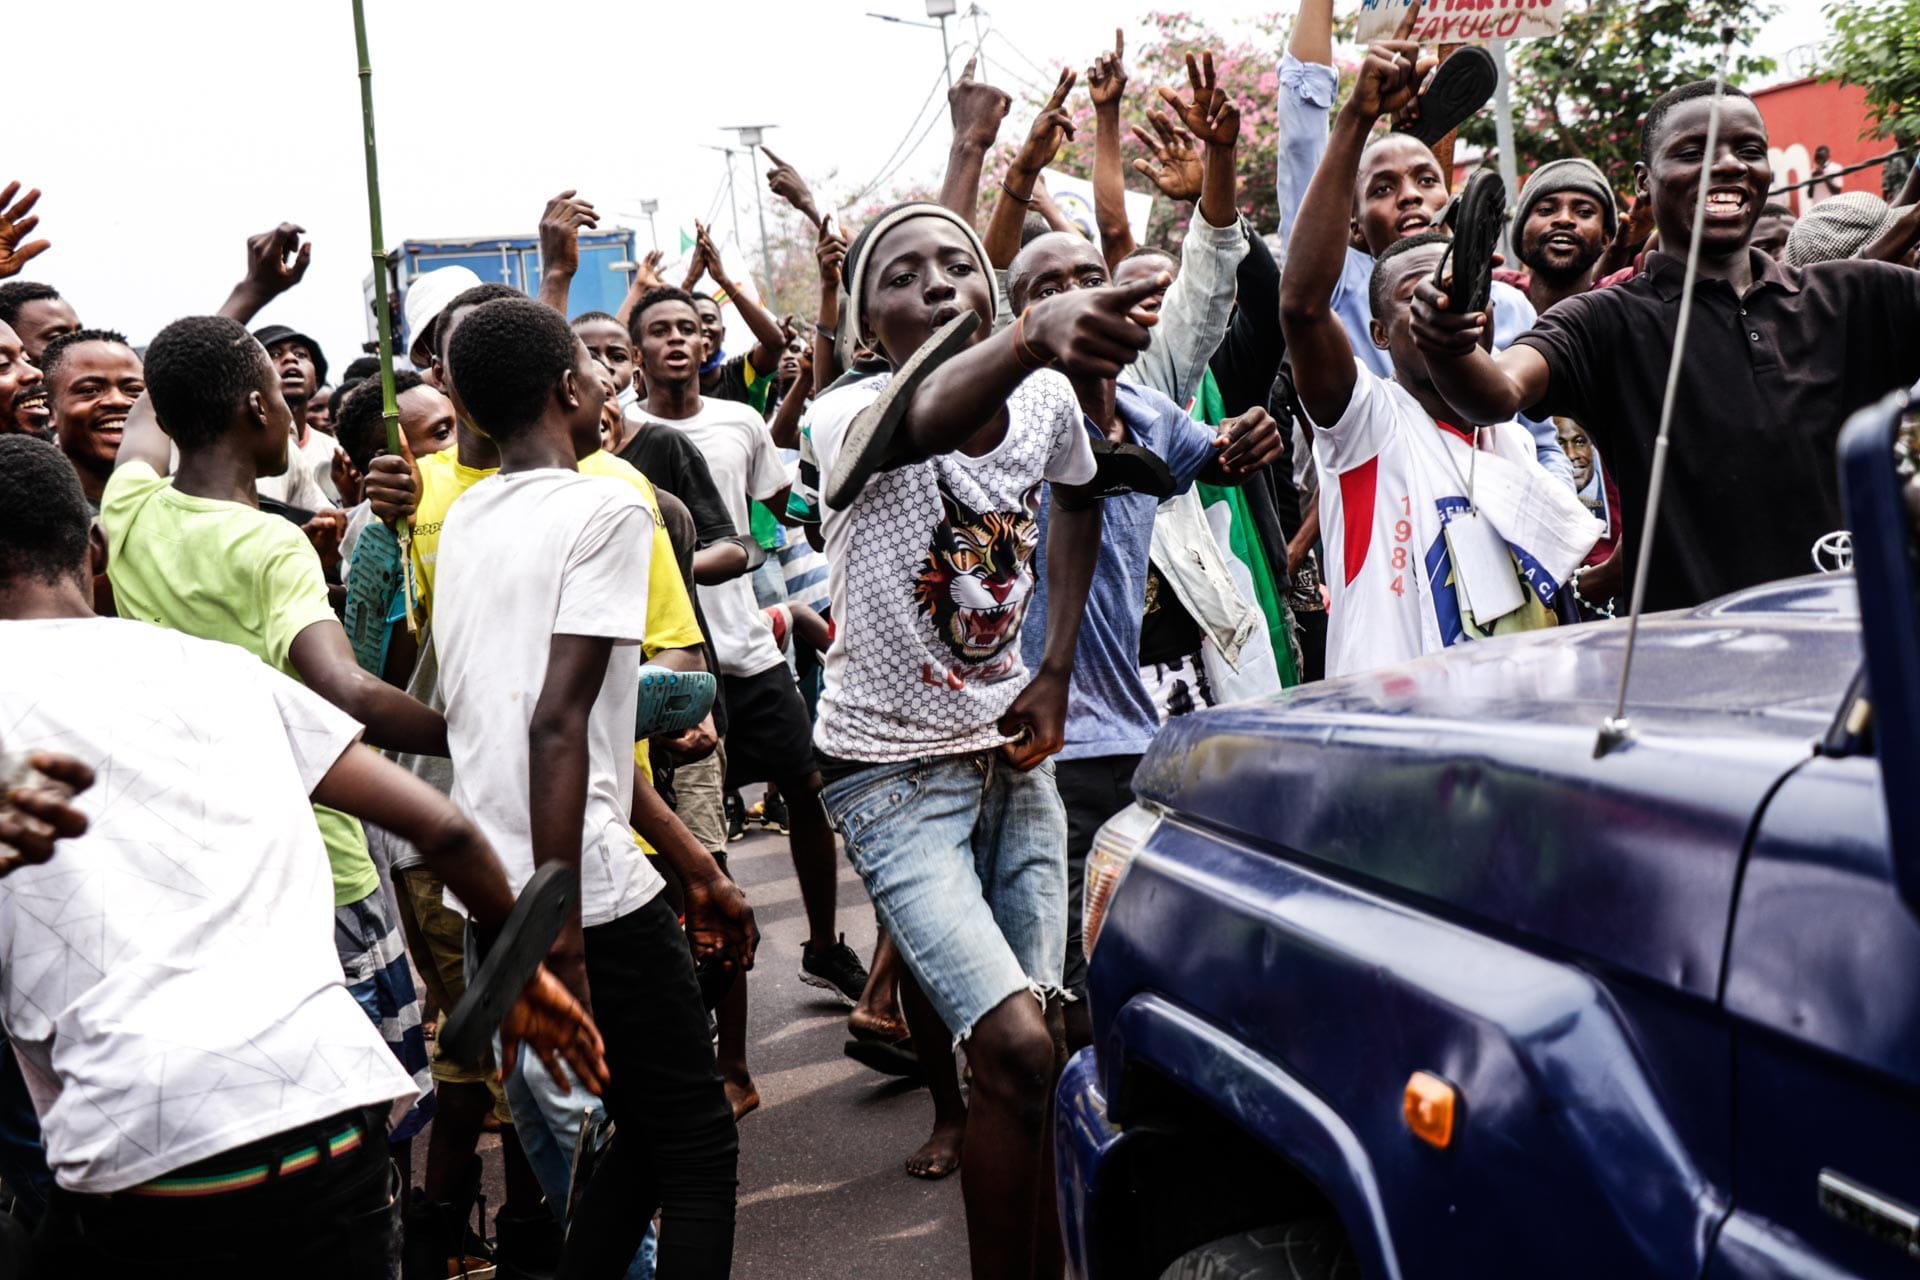 Kinshasa, DRC, August 23th 2020. Supporters of Lamuka opposition party leader Martin Fayulu taunt police as he returned to Kinshasa this week after being stuck in the United States for five months due to coronavirus travel restrictions. © Justin Makangara for Fondation Carmignac